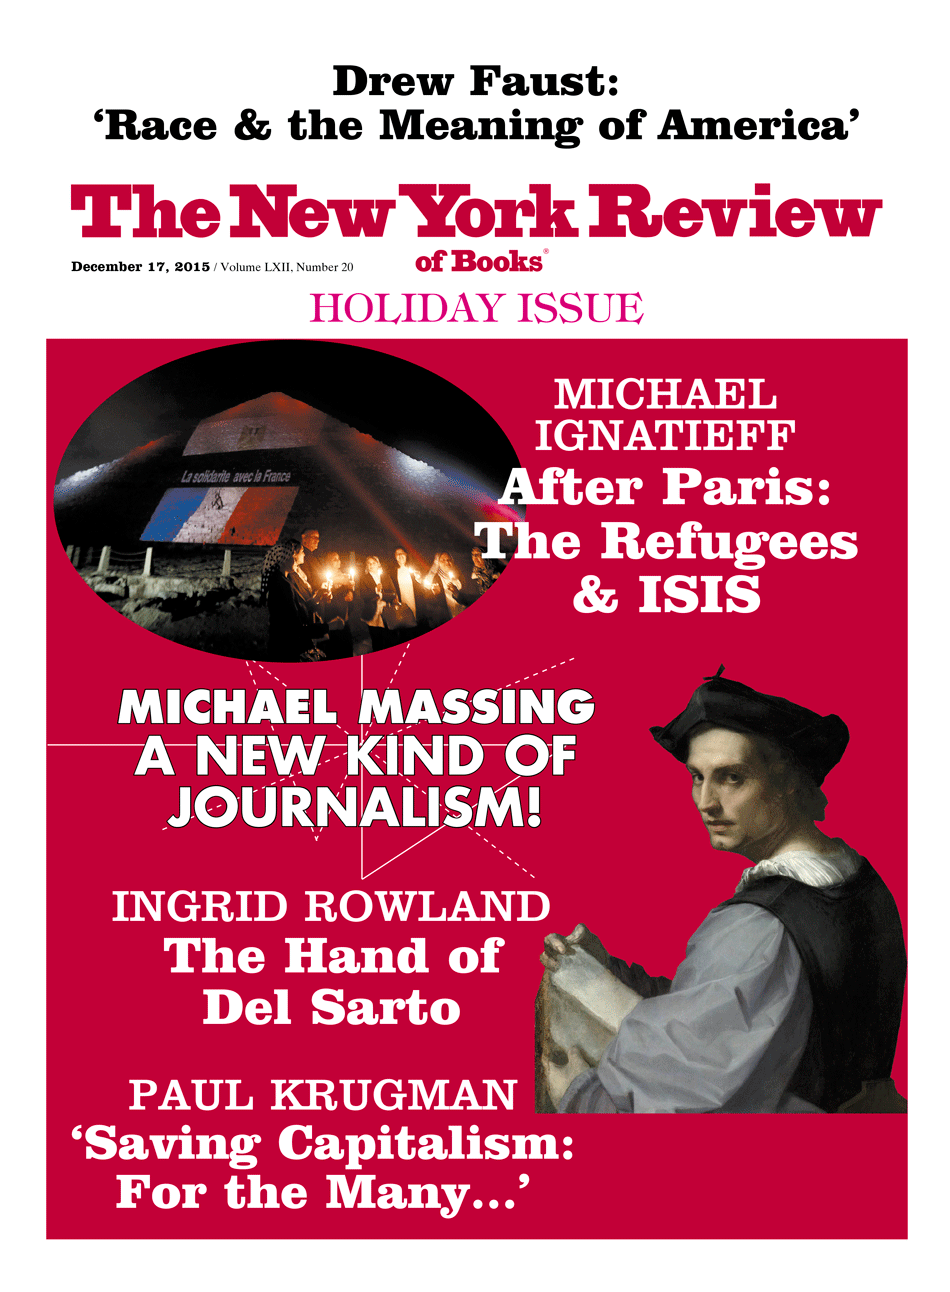 Image of the December 17, 2015 issue cover.